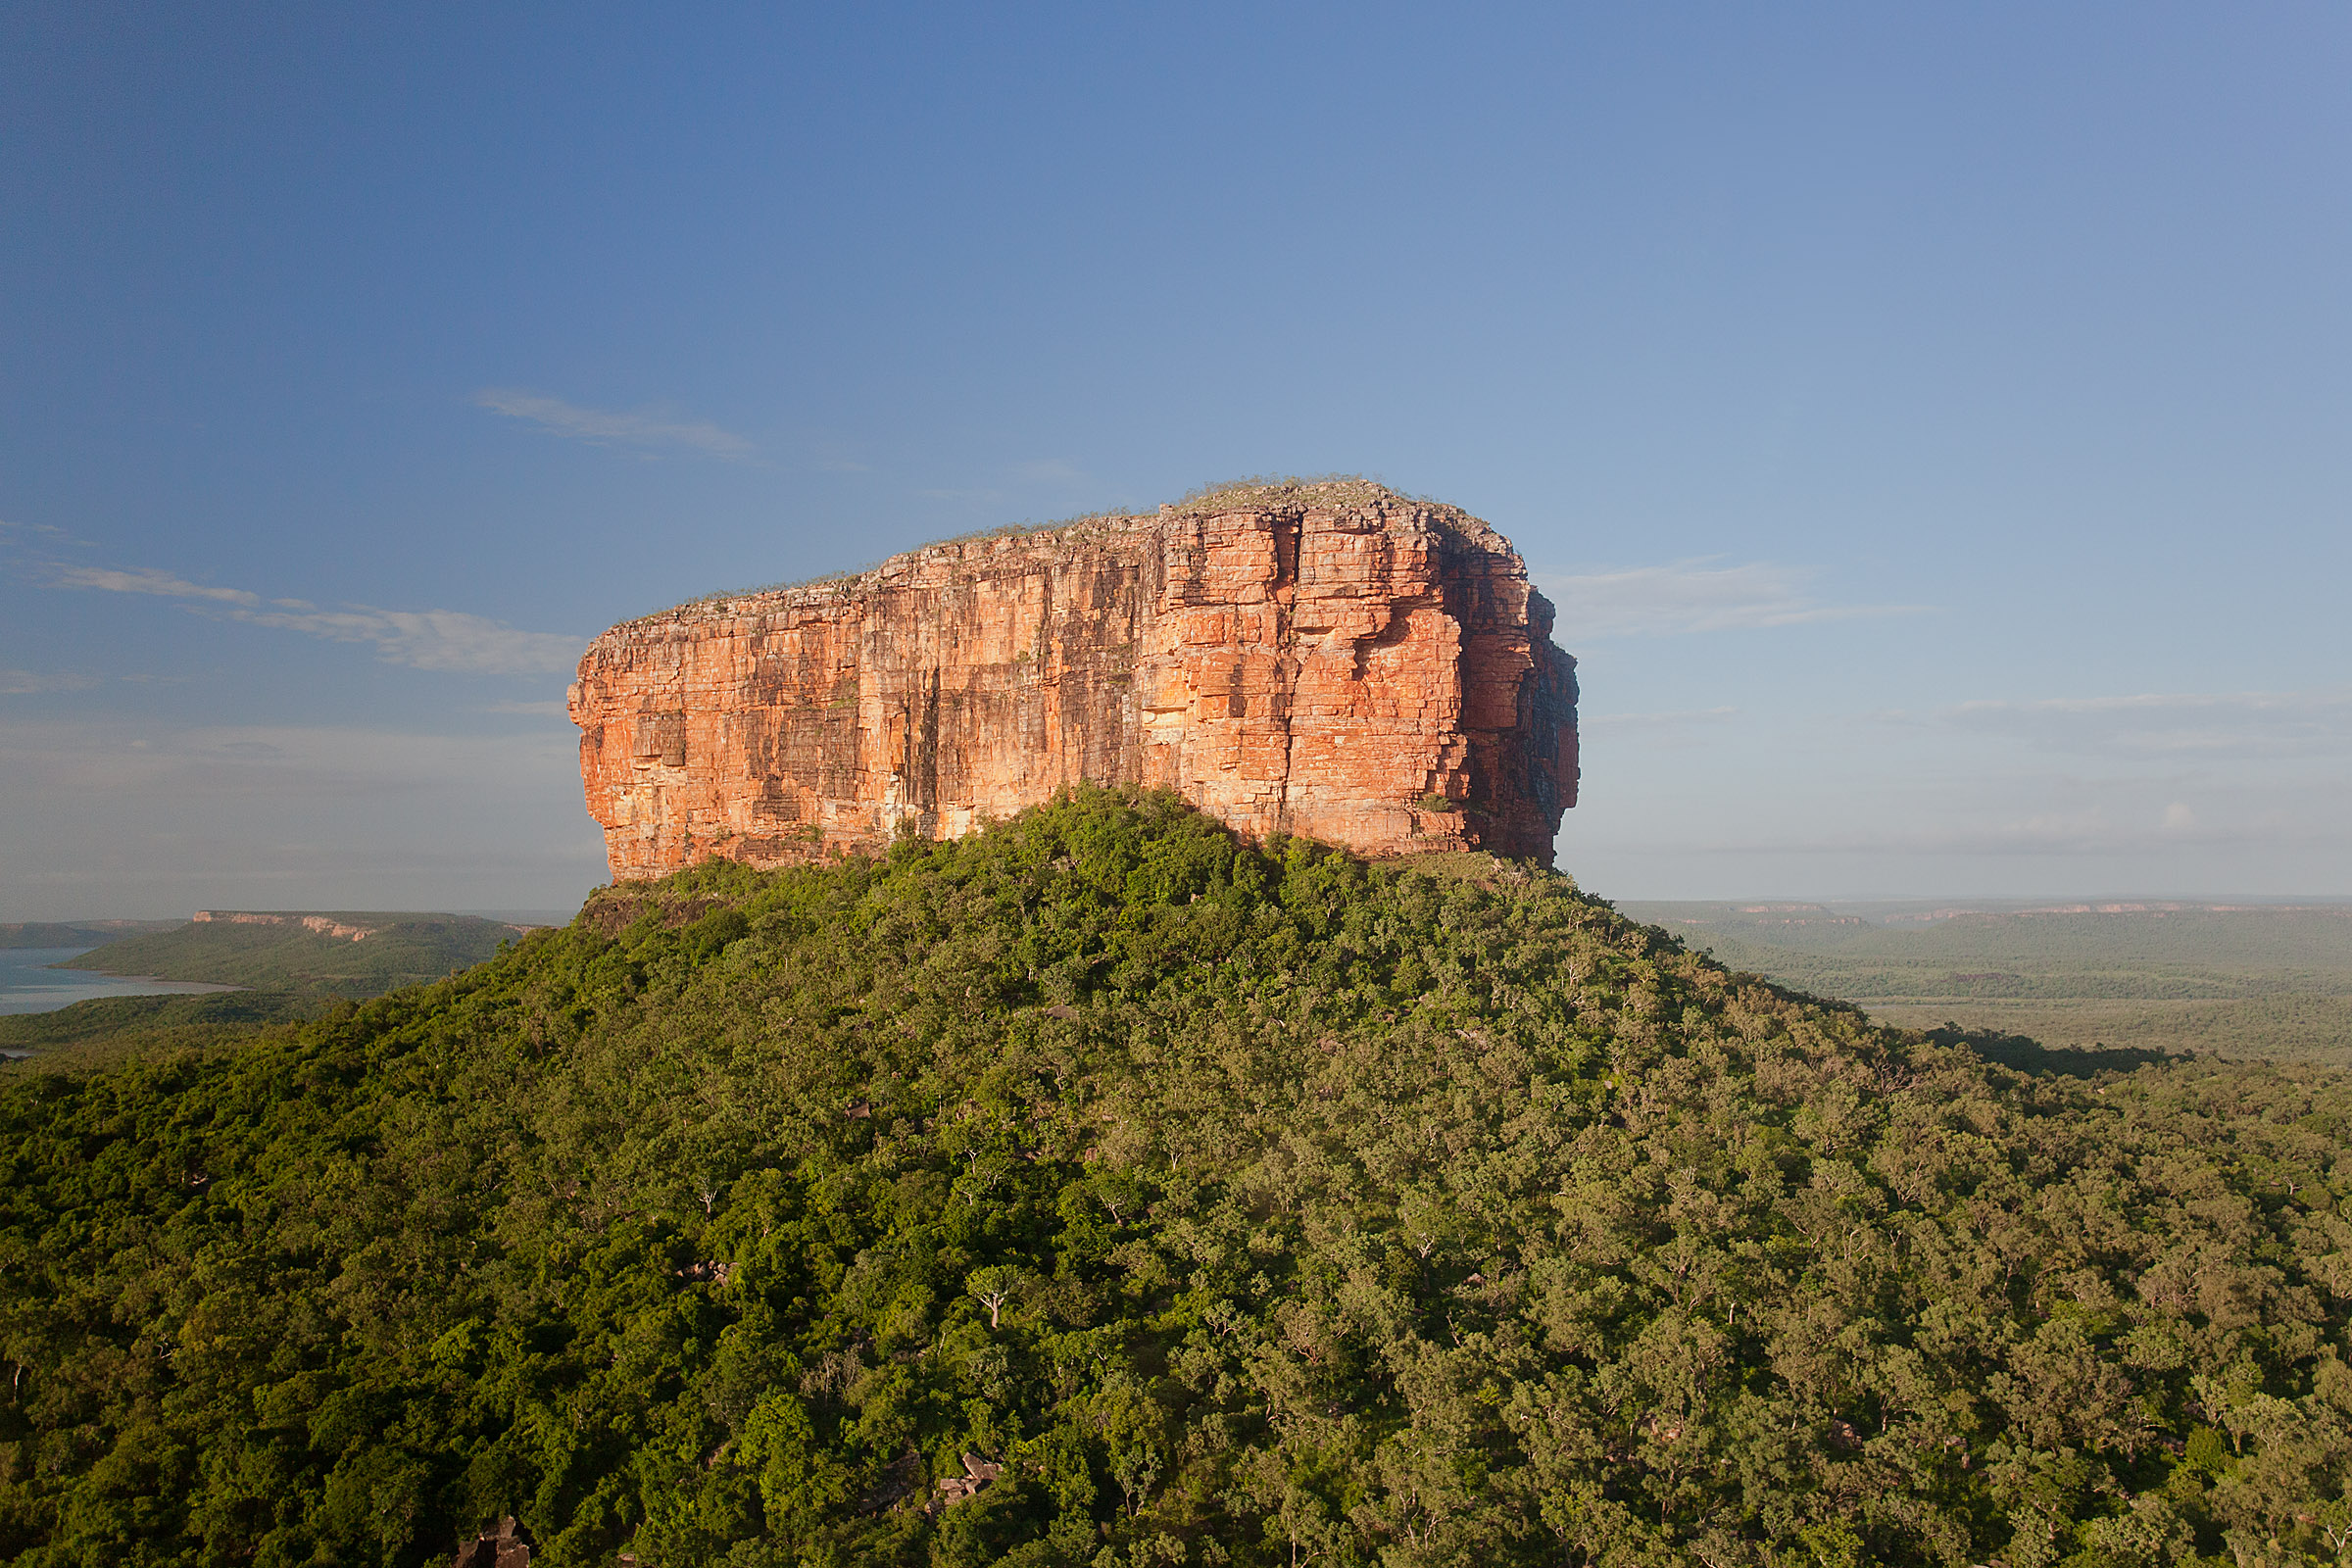 Isolated and remote, the Kimberley could be home to untold numbers of new and endemic insects. Image: Bruce Webber